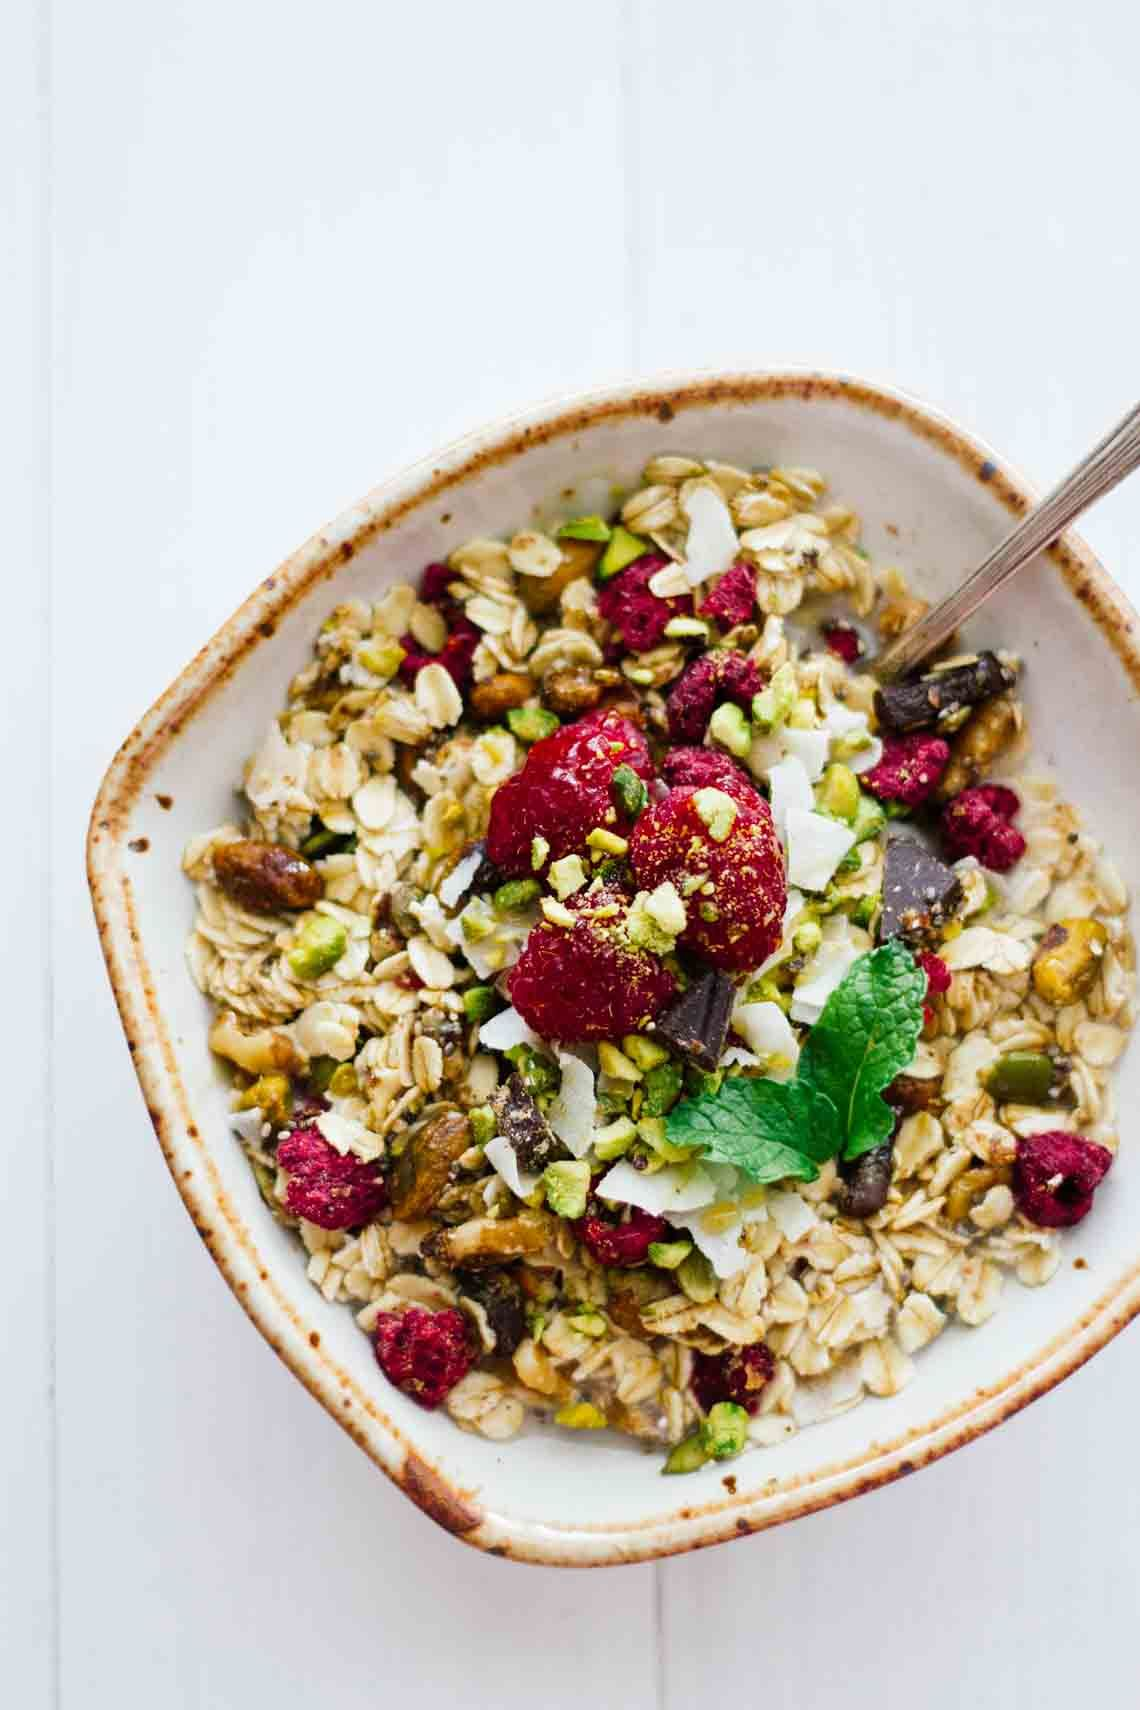 Homemade Chocolate Raspberry Muesli! Vegetarian, gluten-free, refined sugar free. An easy, quick, and healthy breakfast! Make this stuff in about 10 minutes and keep it in your pantry for 2 or more weeks!